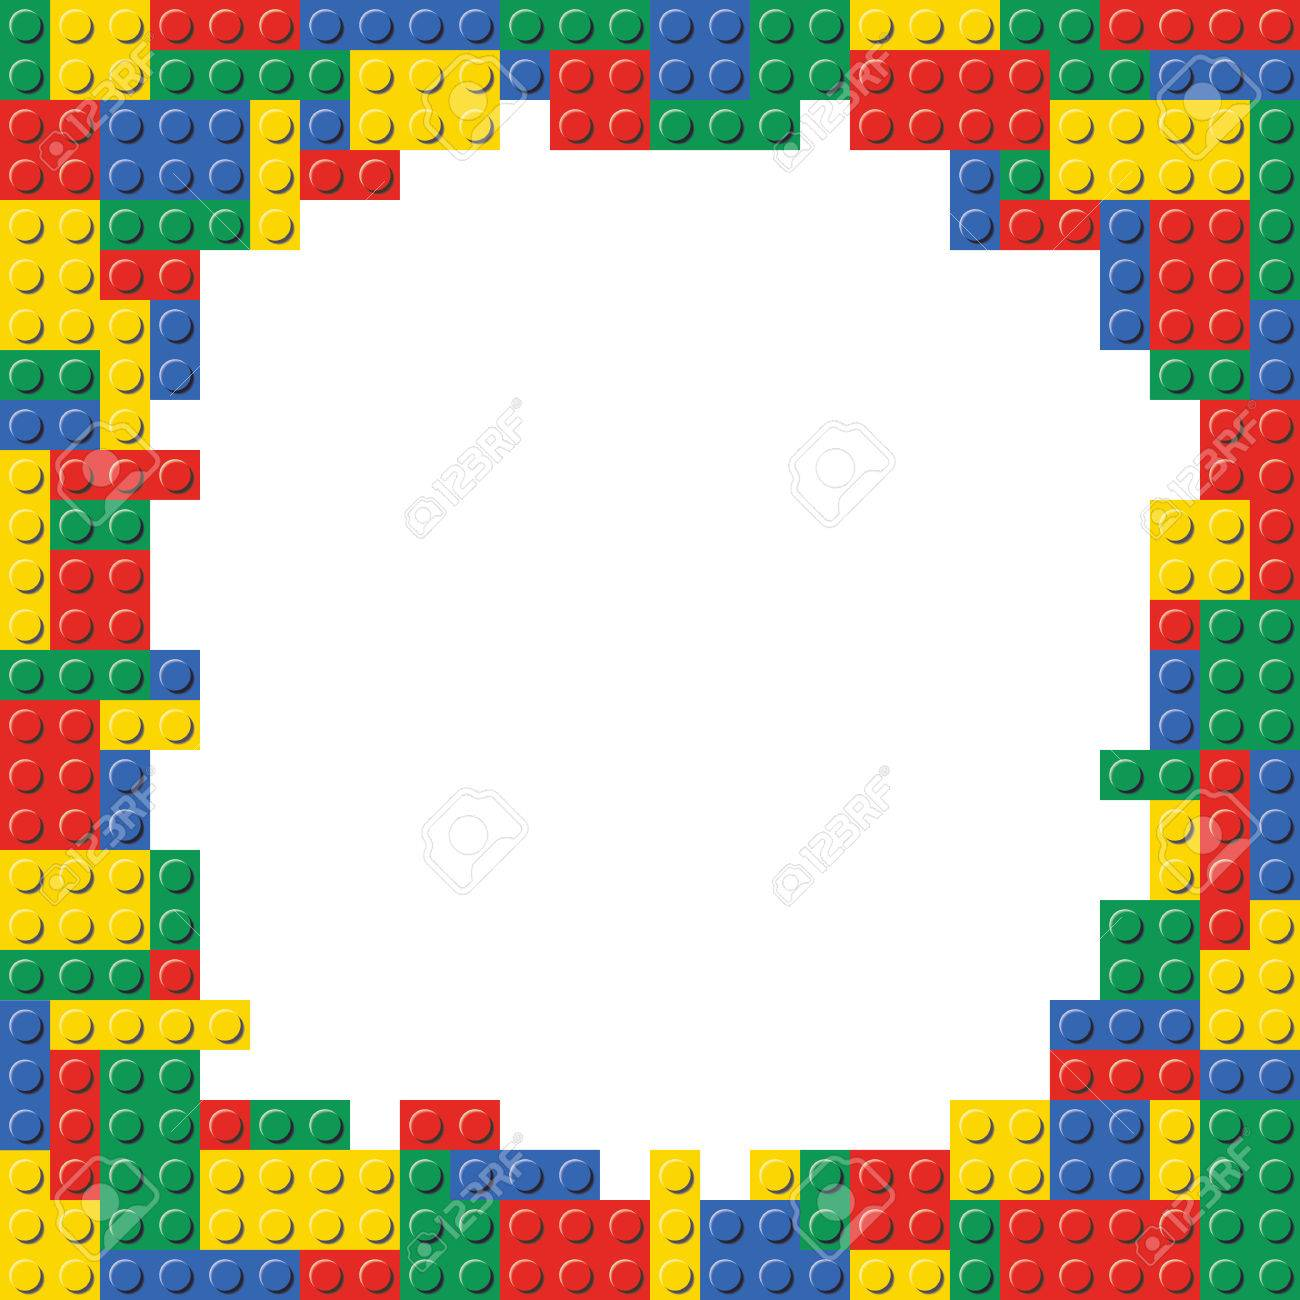 lego building blocks brick border frame background pattern texture